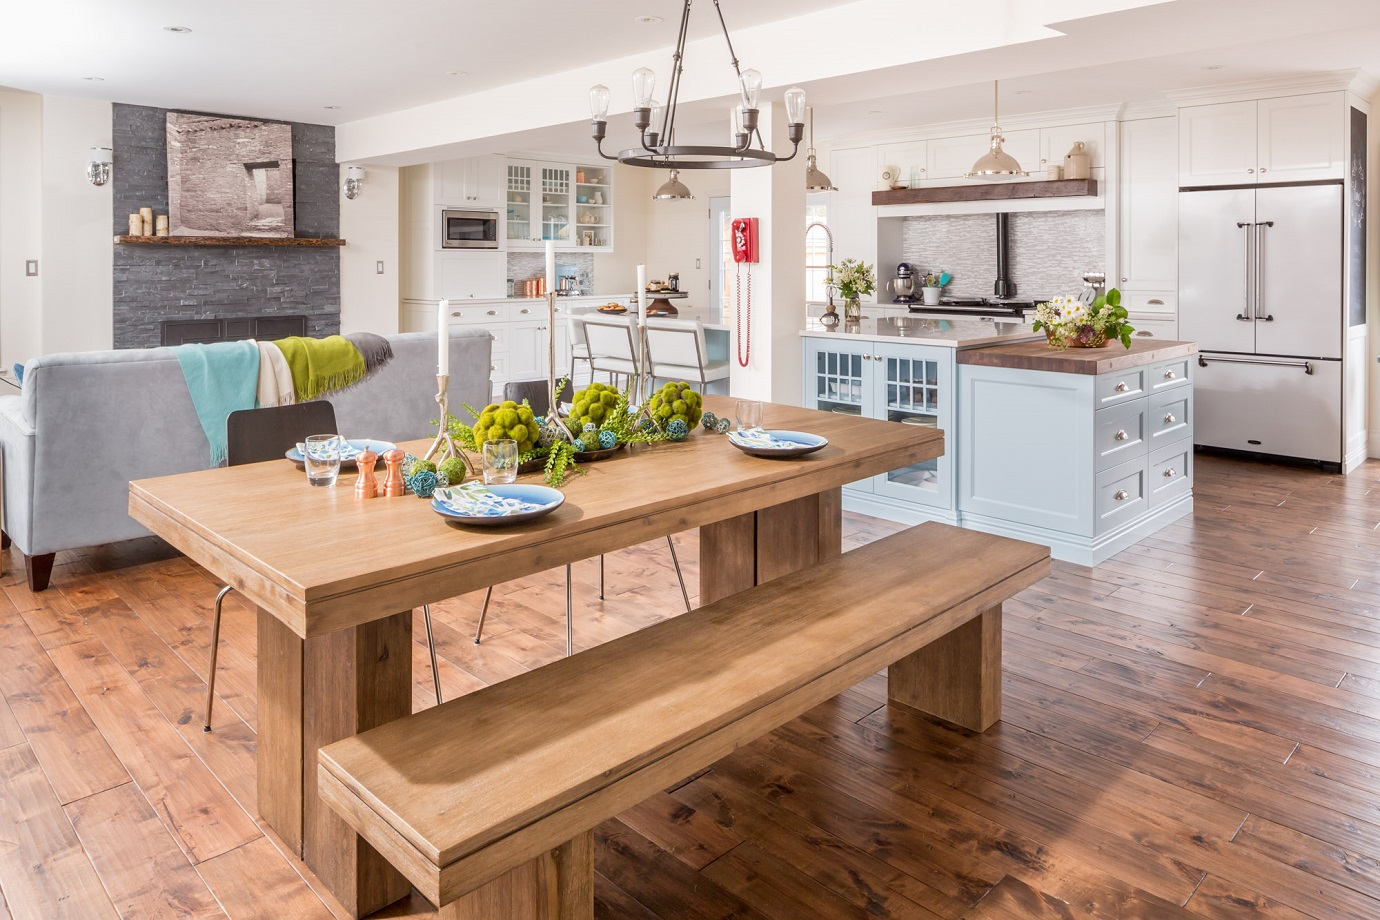 Best of houzz 2015 awards news paragon kitchens for Kitchen design houzz